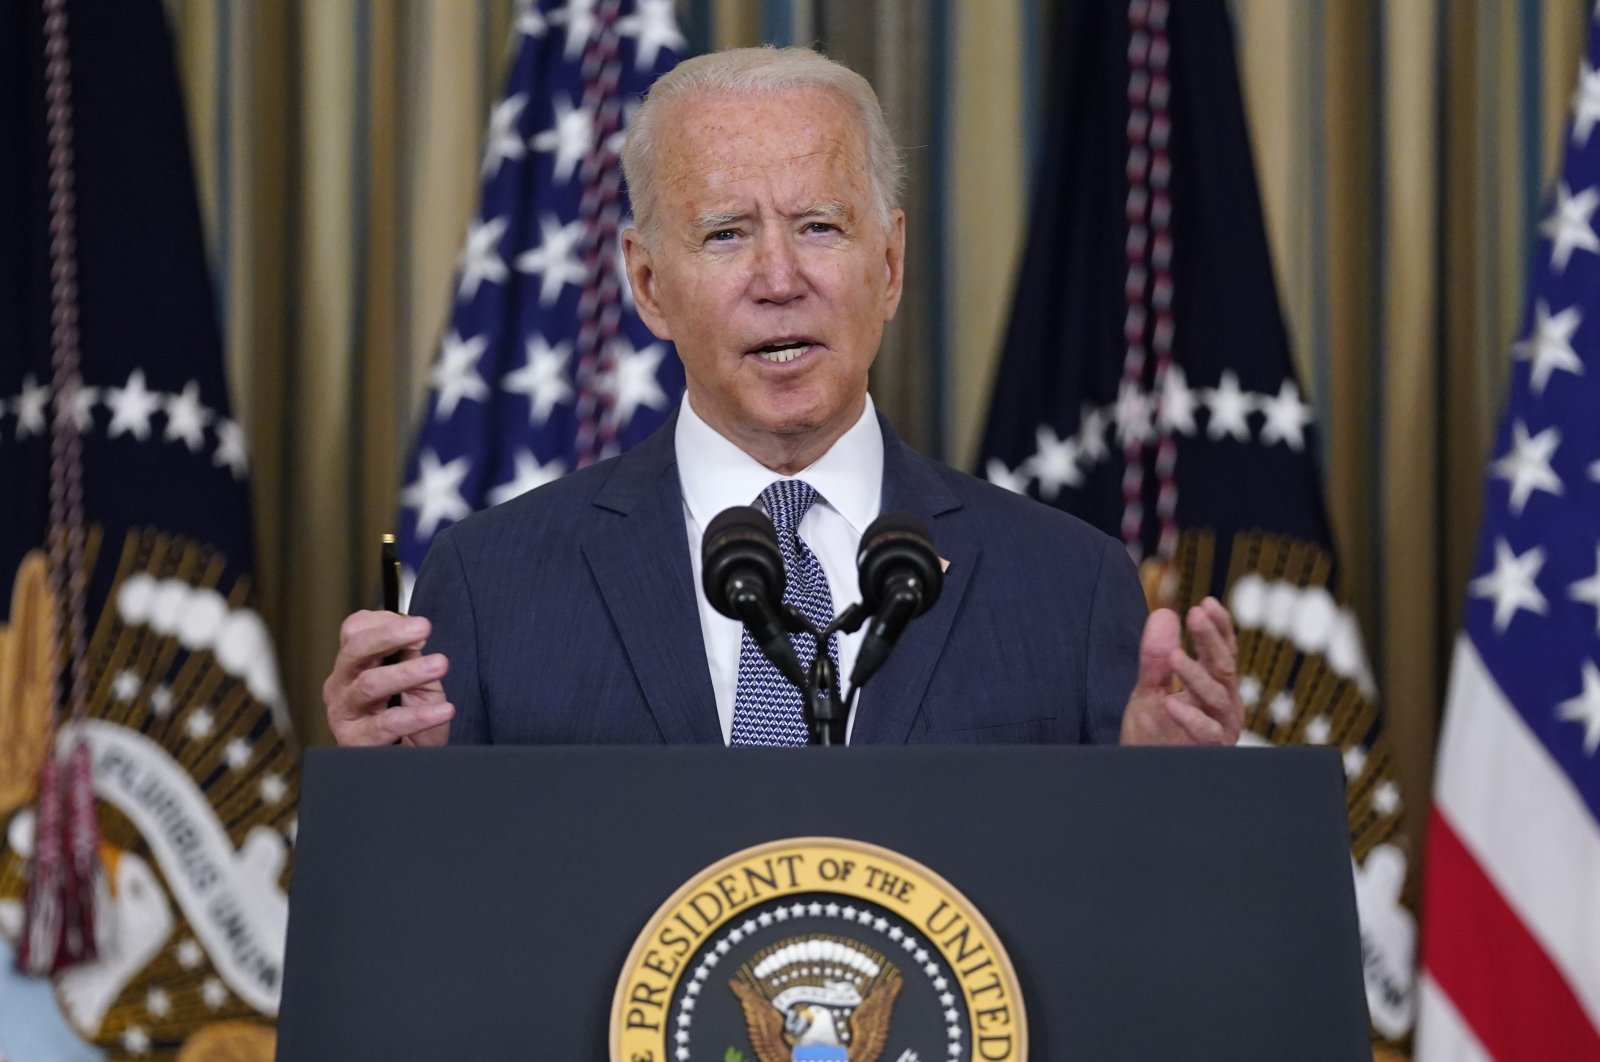 U.S. President Joe Biden speaks before signing an executive order aimed at promoting competition in the economy, in the State Dining Room of the White House, Washington, July 9, 2021. (AP Photo)